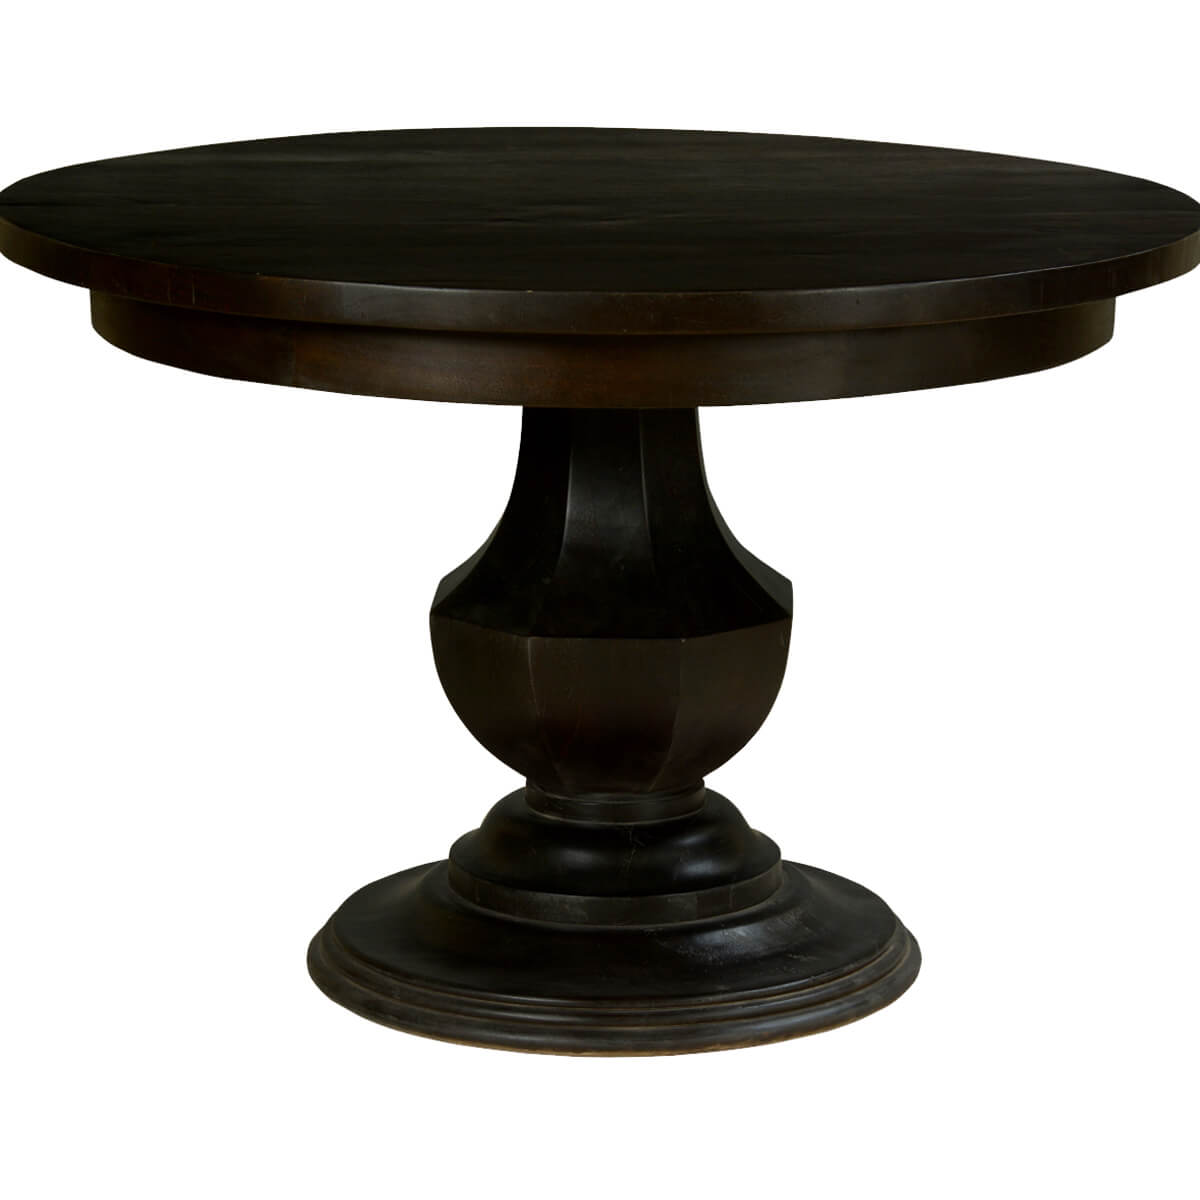 midnight solid mango wood round pedestal dining table. Black Bedroom Furniture Sets. Home Design Ideas